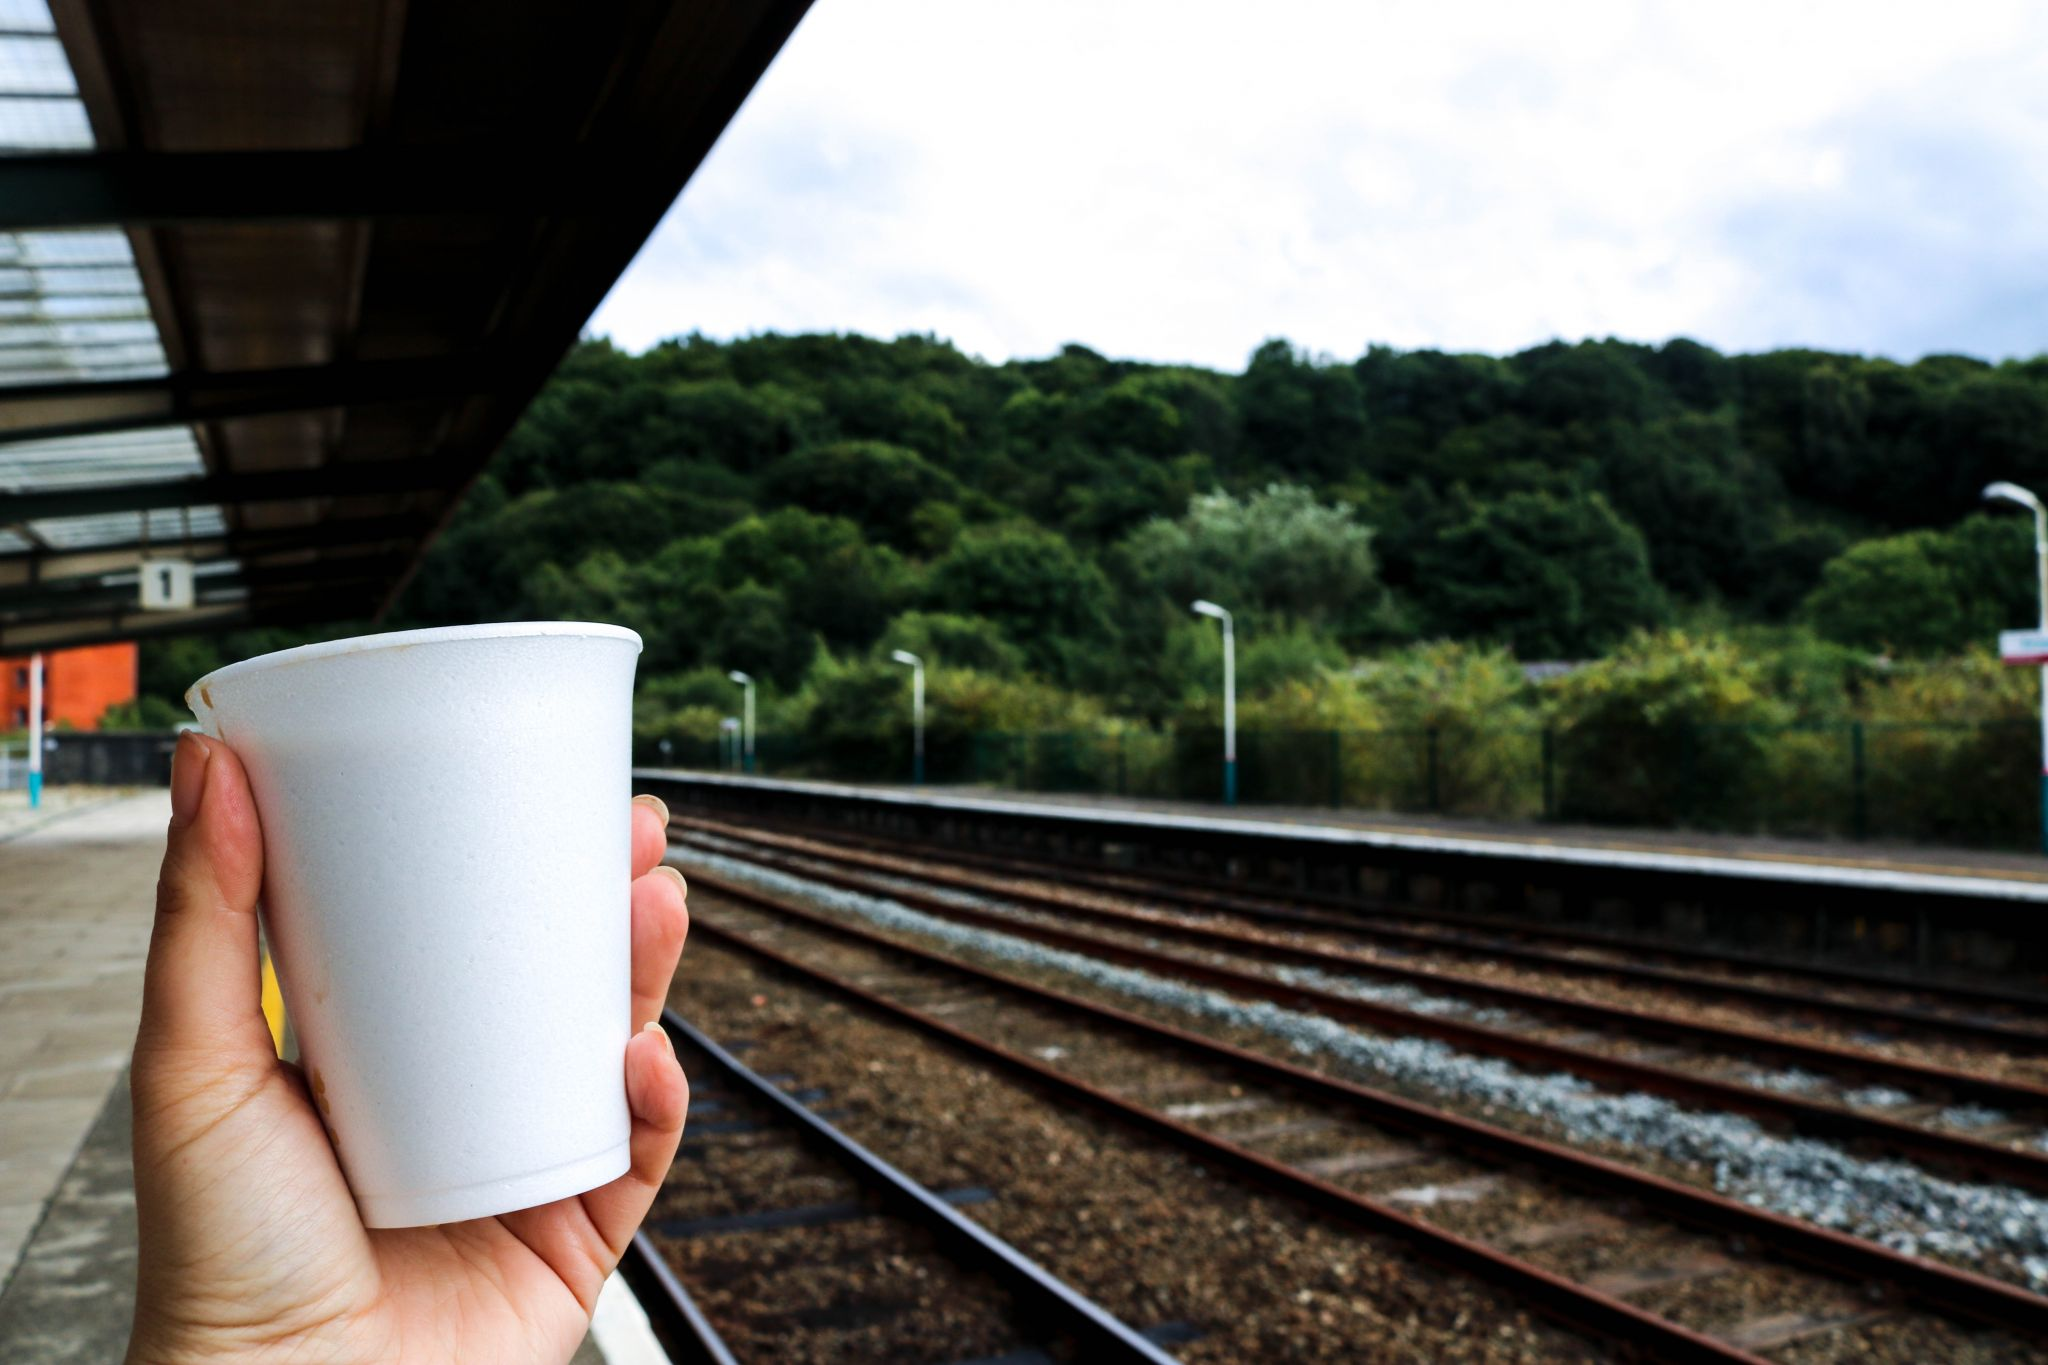 Wales by train: A stunning journey from South to North aboard 'The Gerald of Wales'